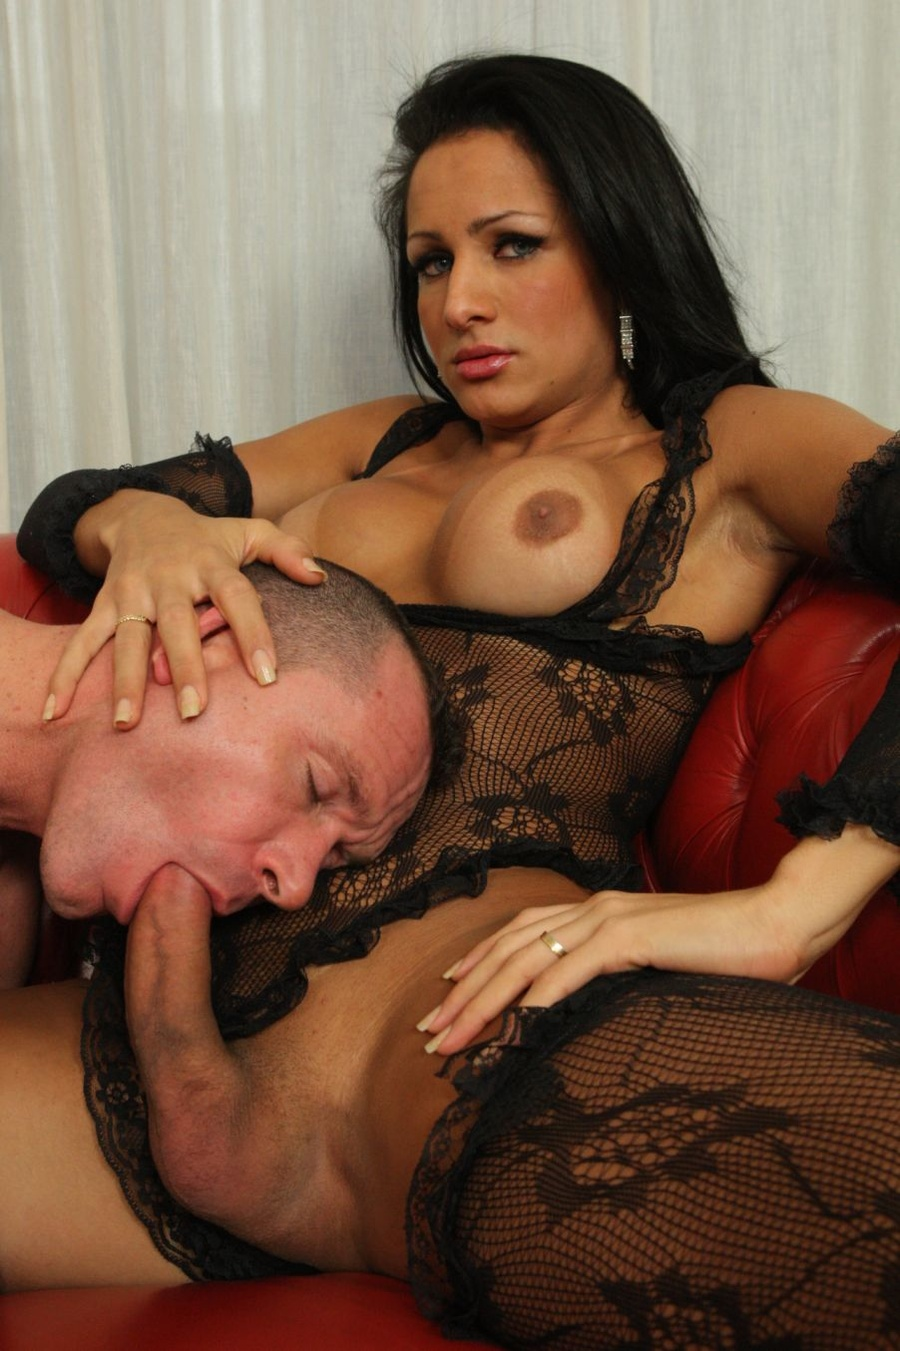 Transvestite foced to suck cock